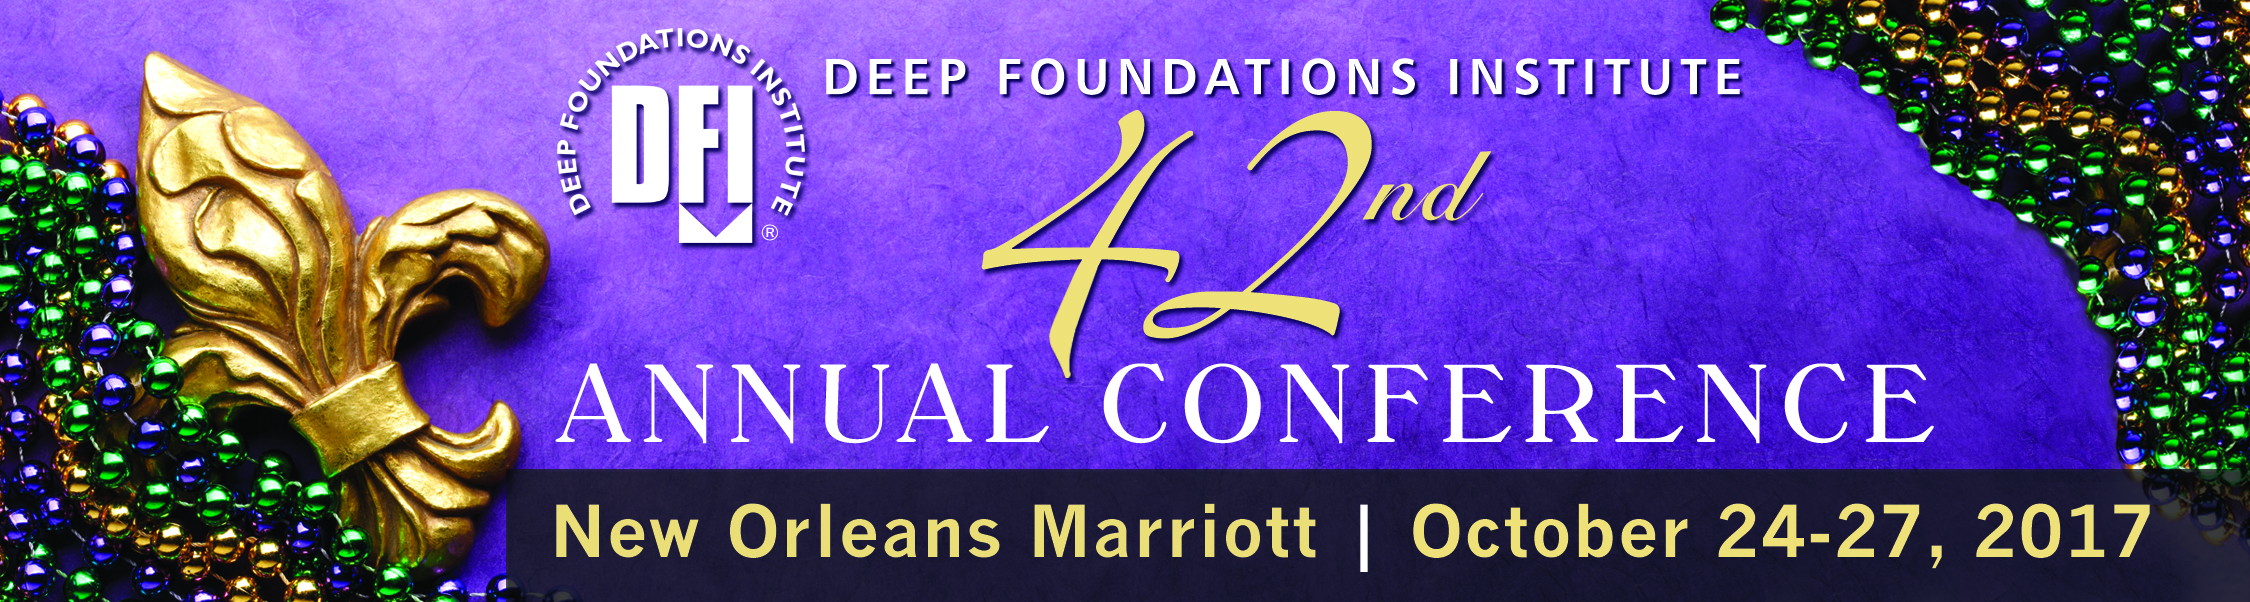 42nd annual conference